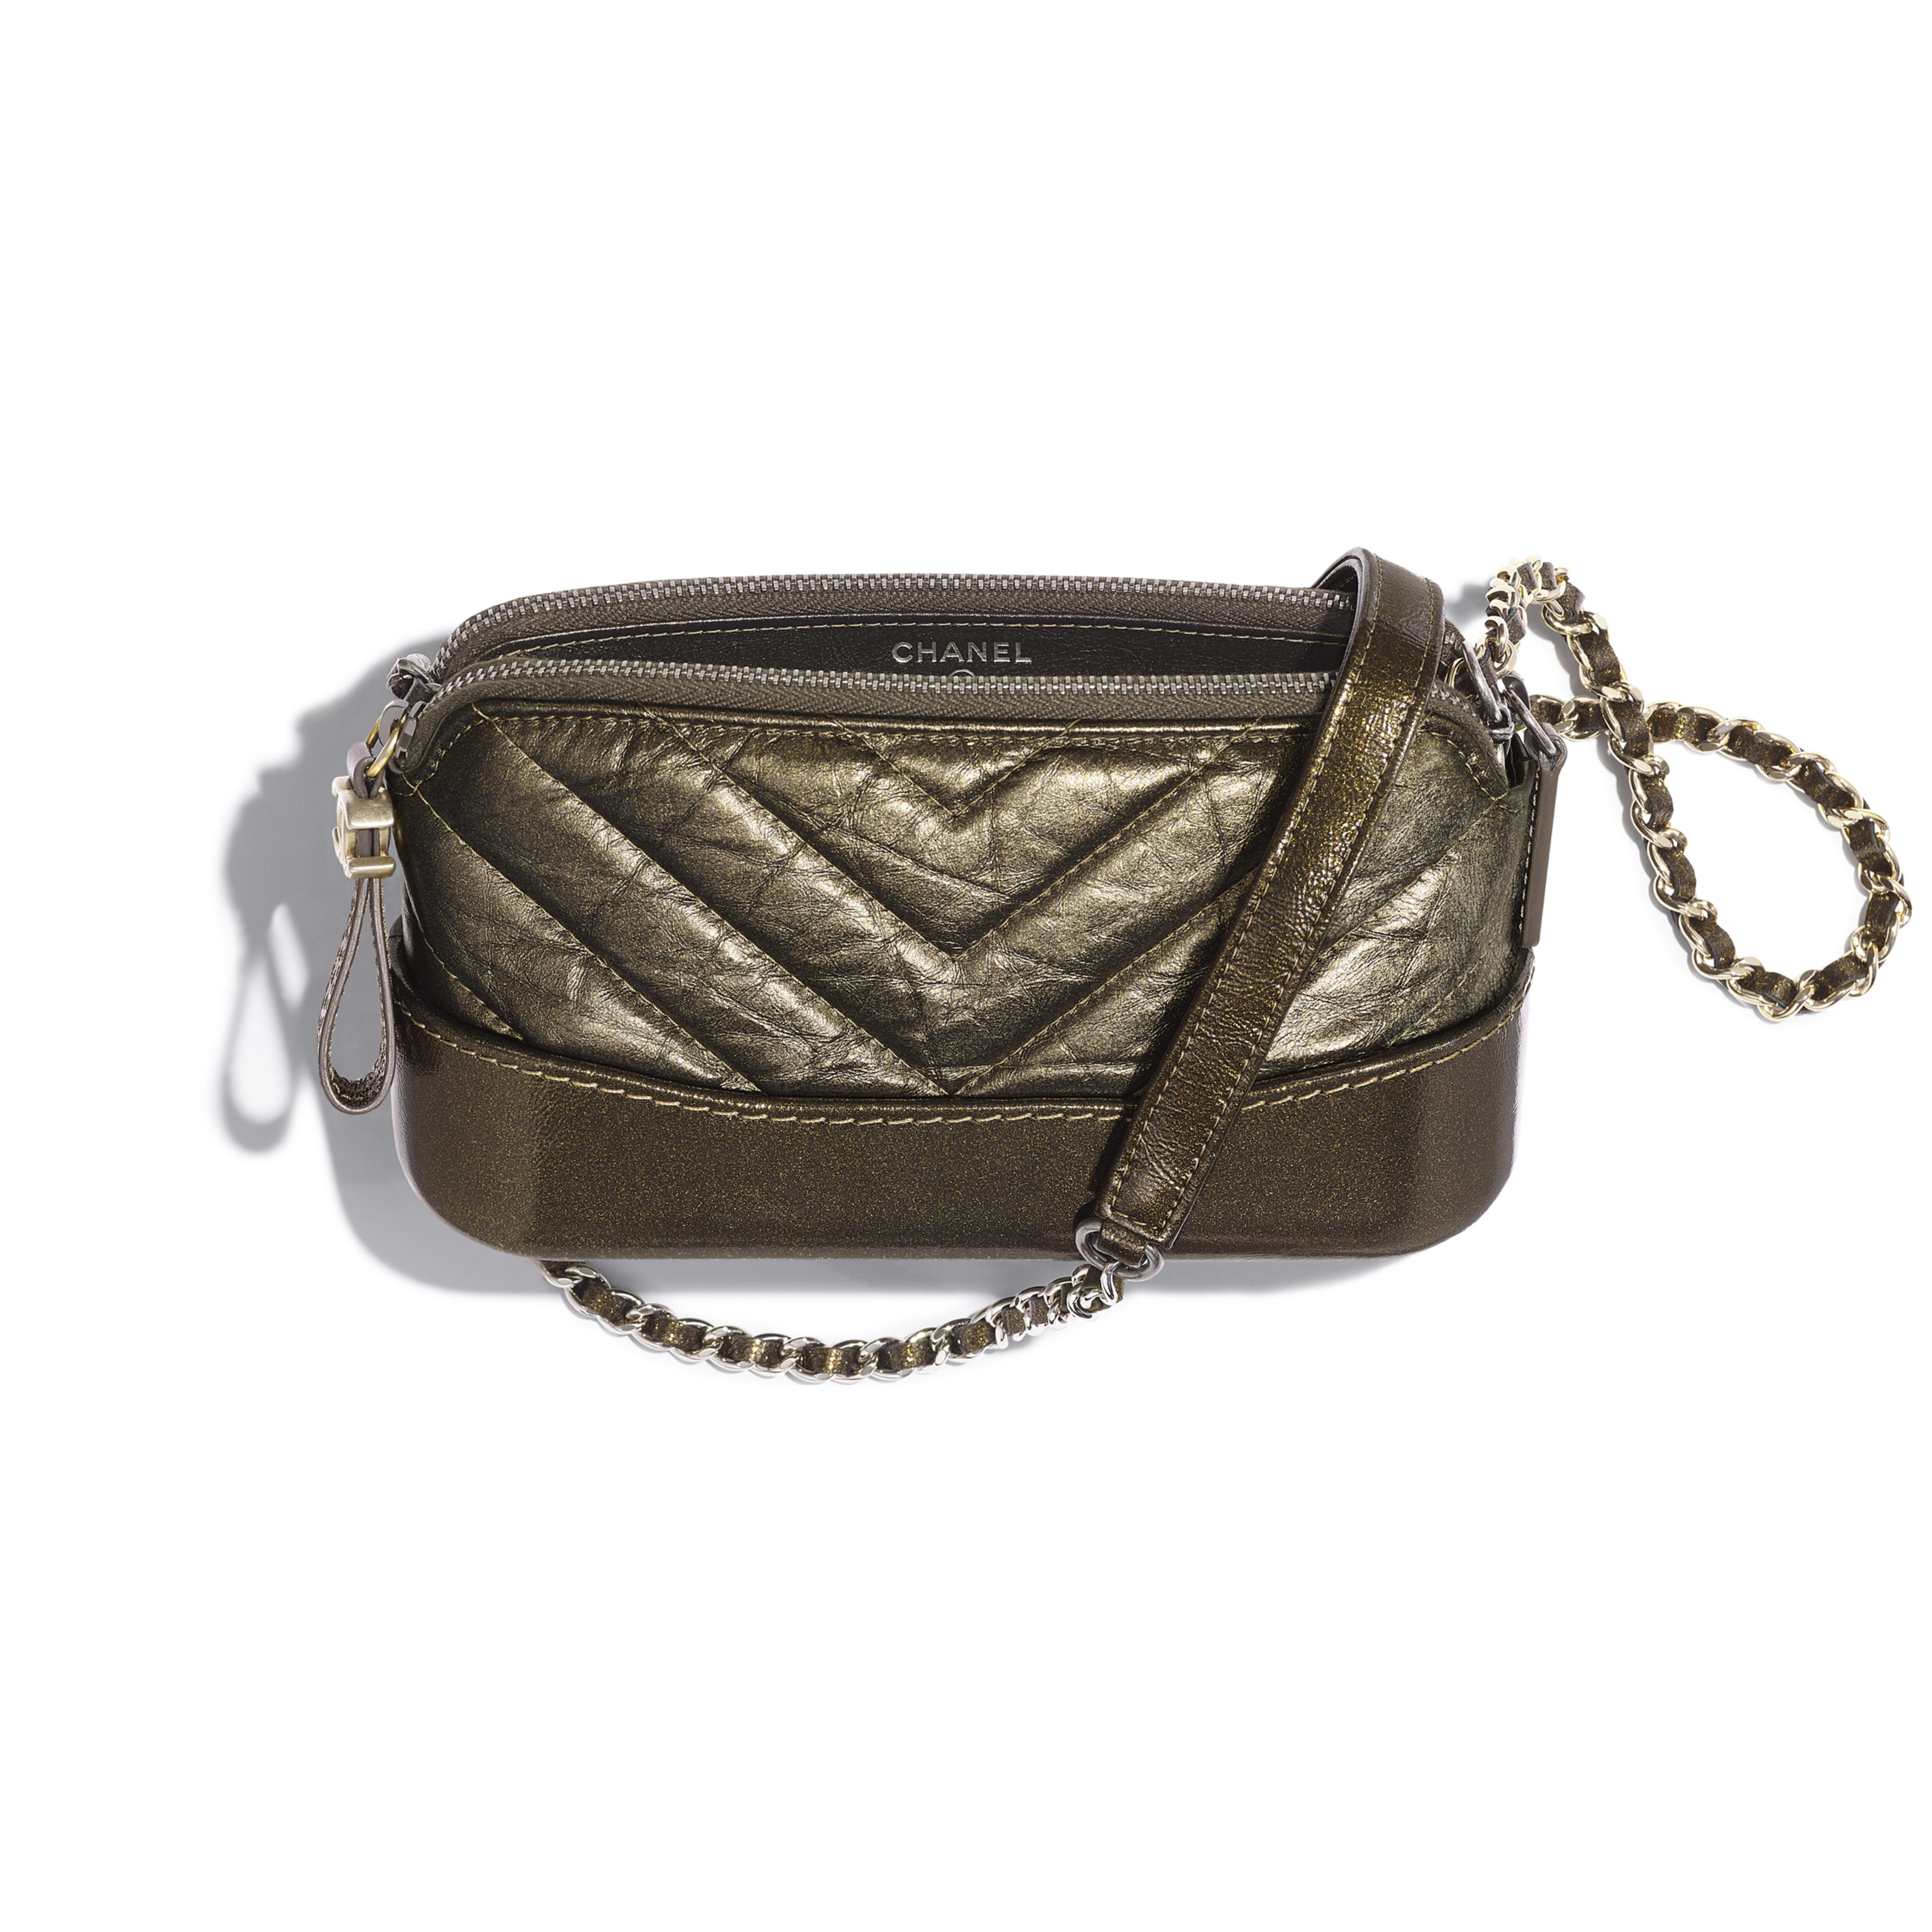 Clutch with Chain - Gold - Glittered Aged Calfskin, Gold-Tone & Silver-Tone Metal - Other view - see full sized version